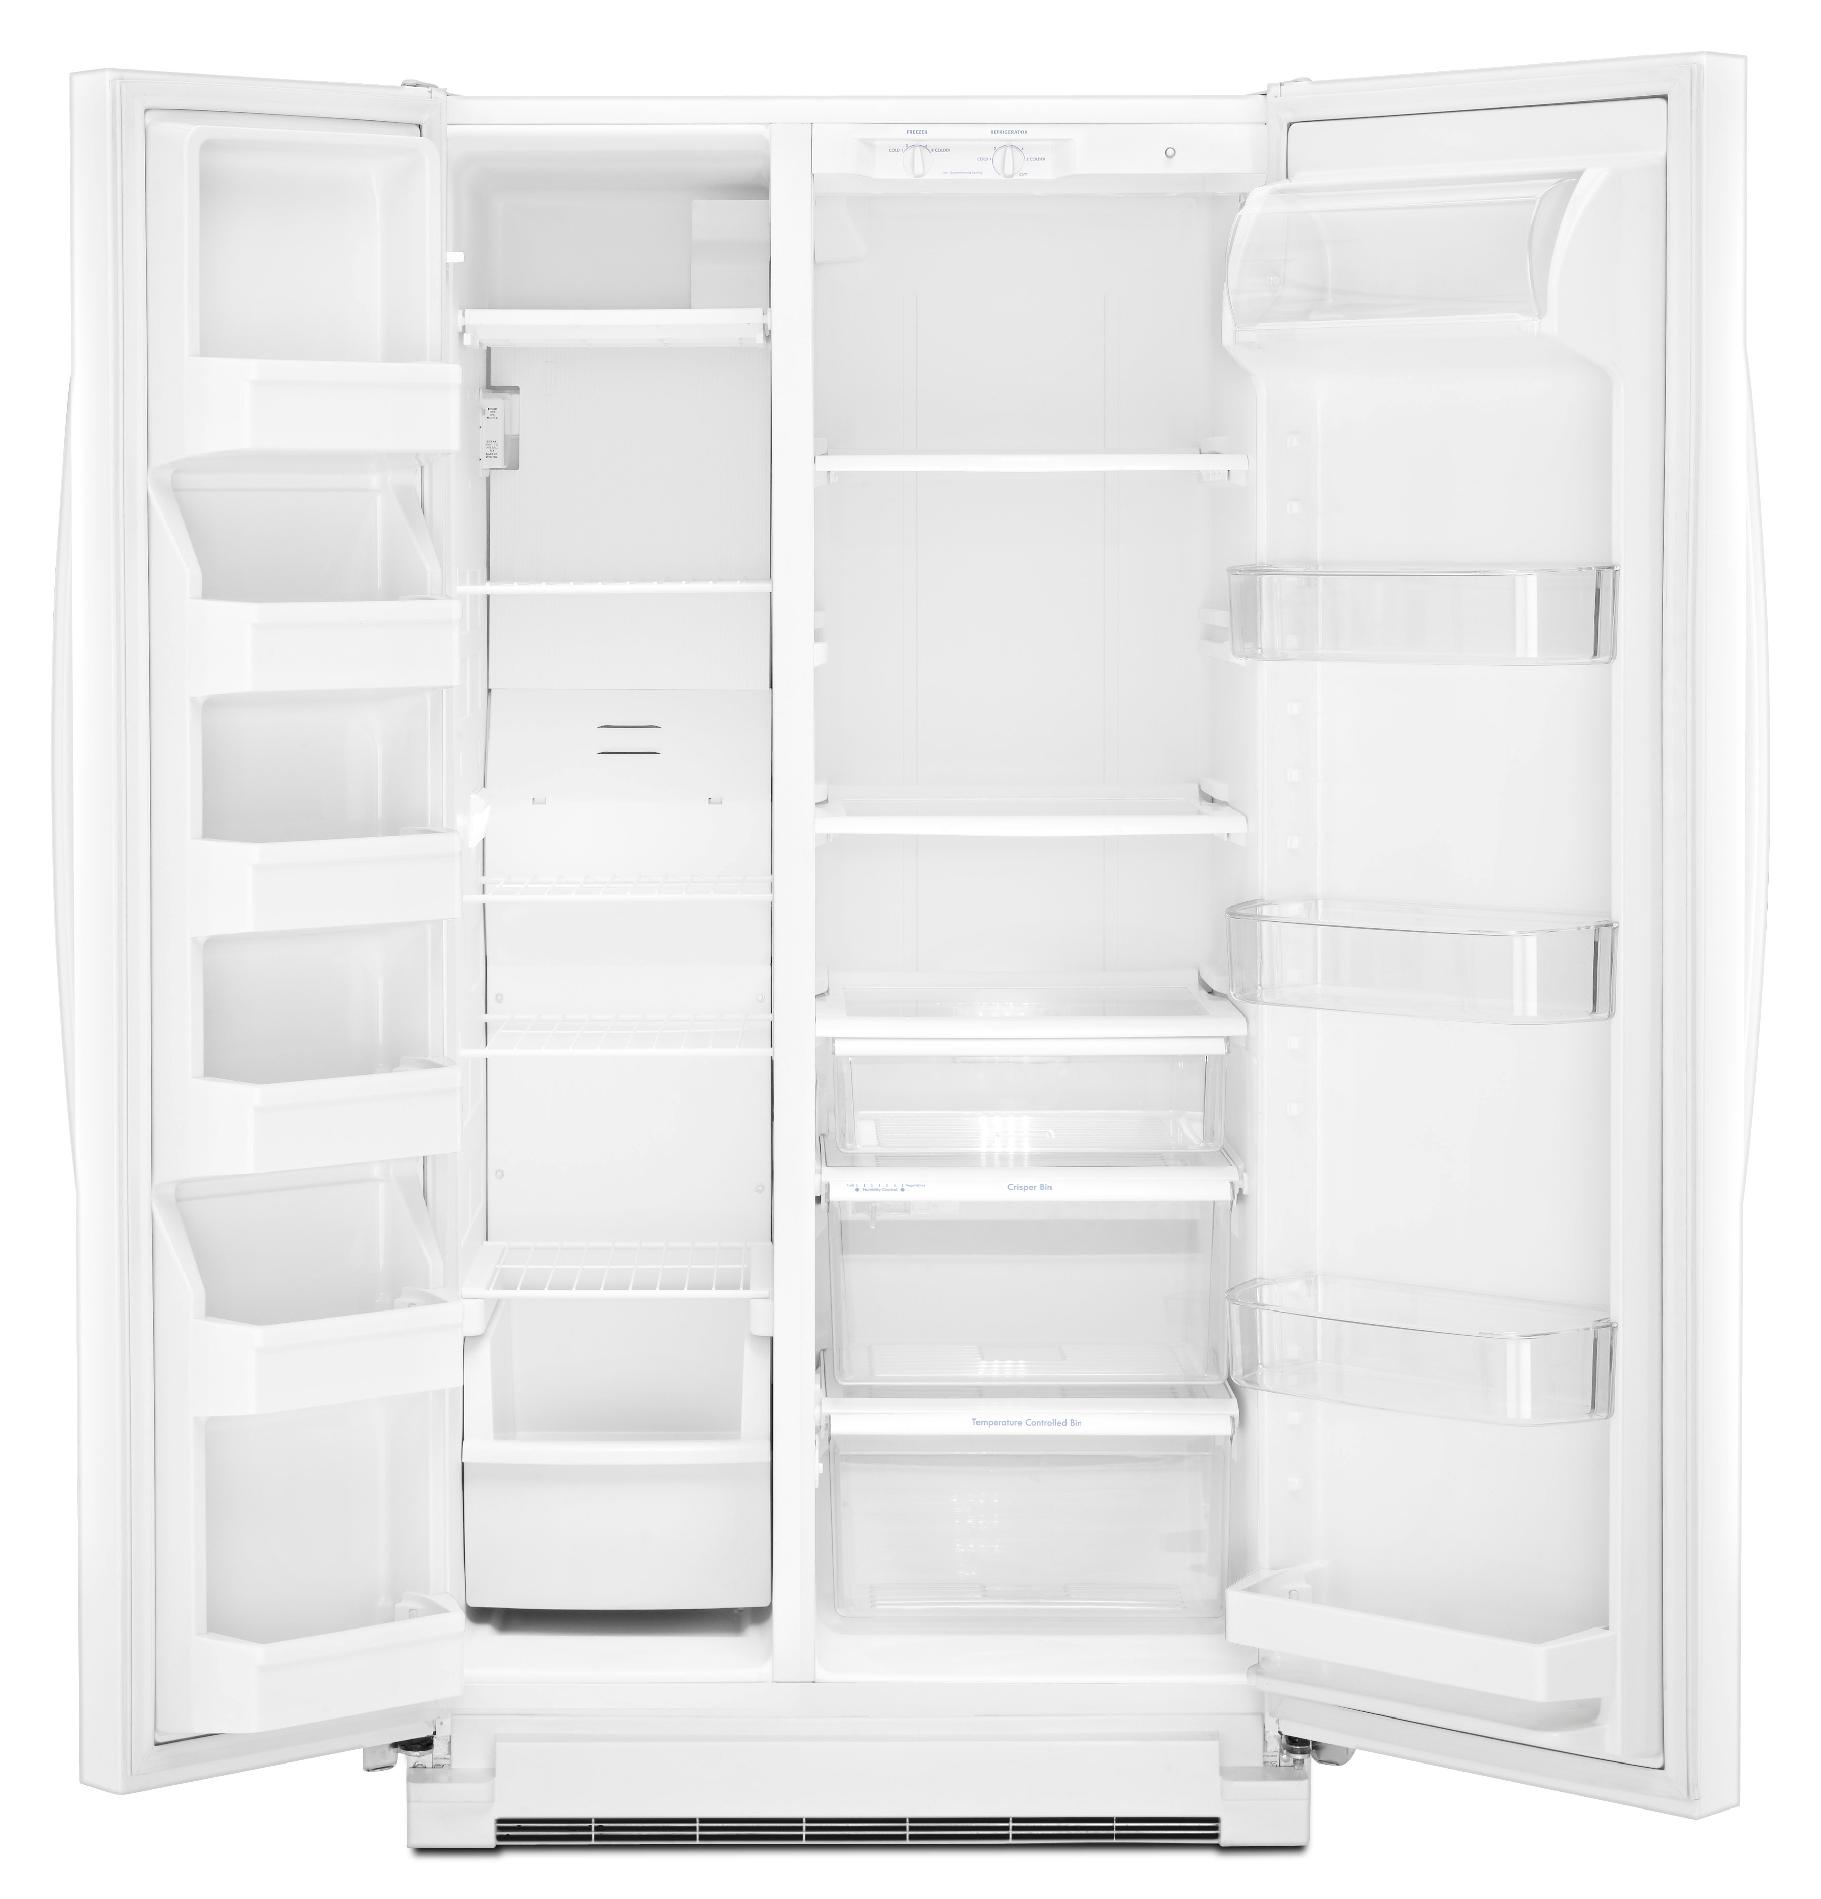 Kenmore 25.2 cu. ft. Side-by-Side Refrigerator - White